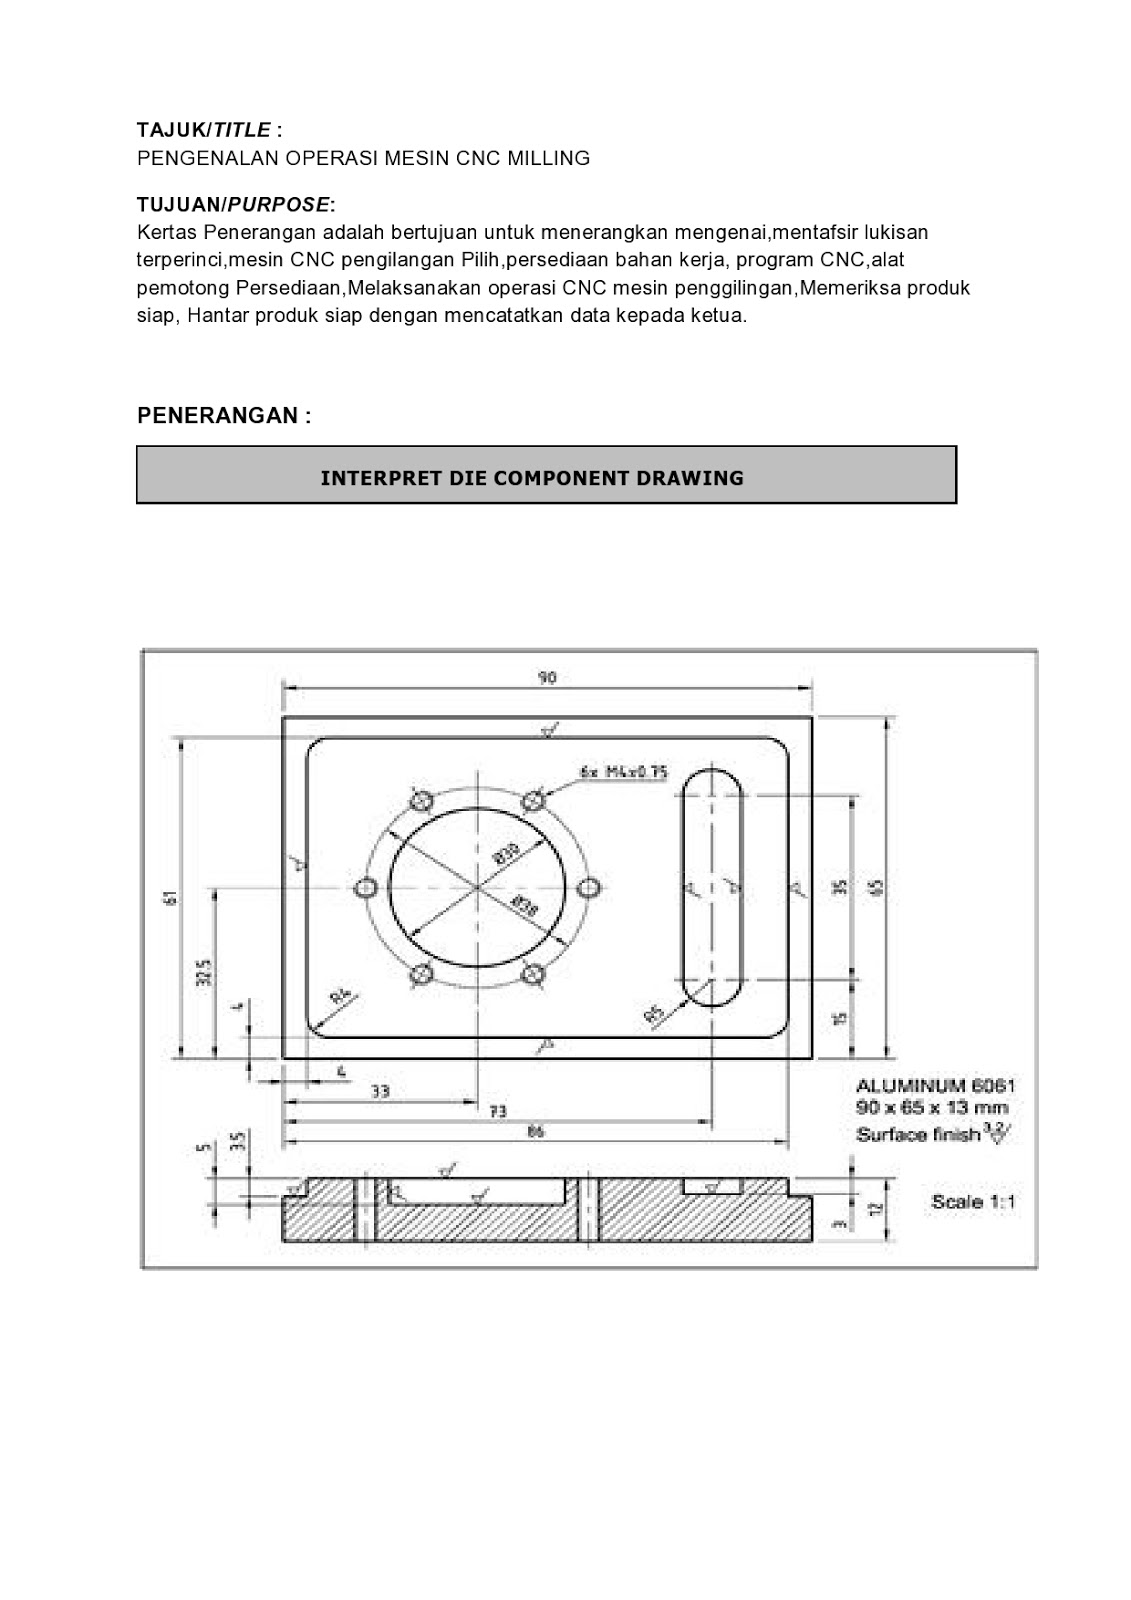 E book october 2015 le03 perform cnc milling works ccuart Choice Image